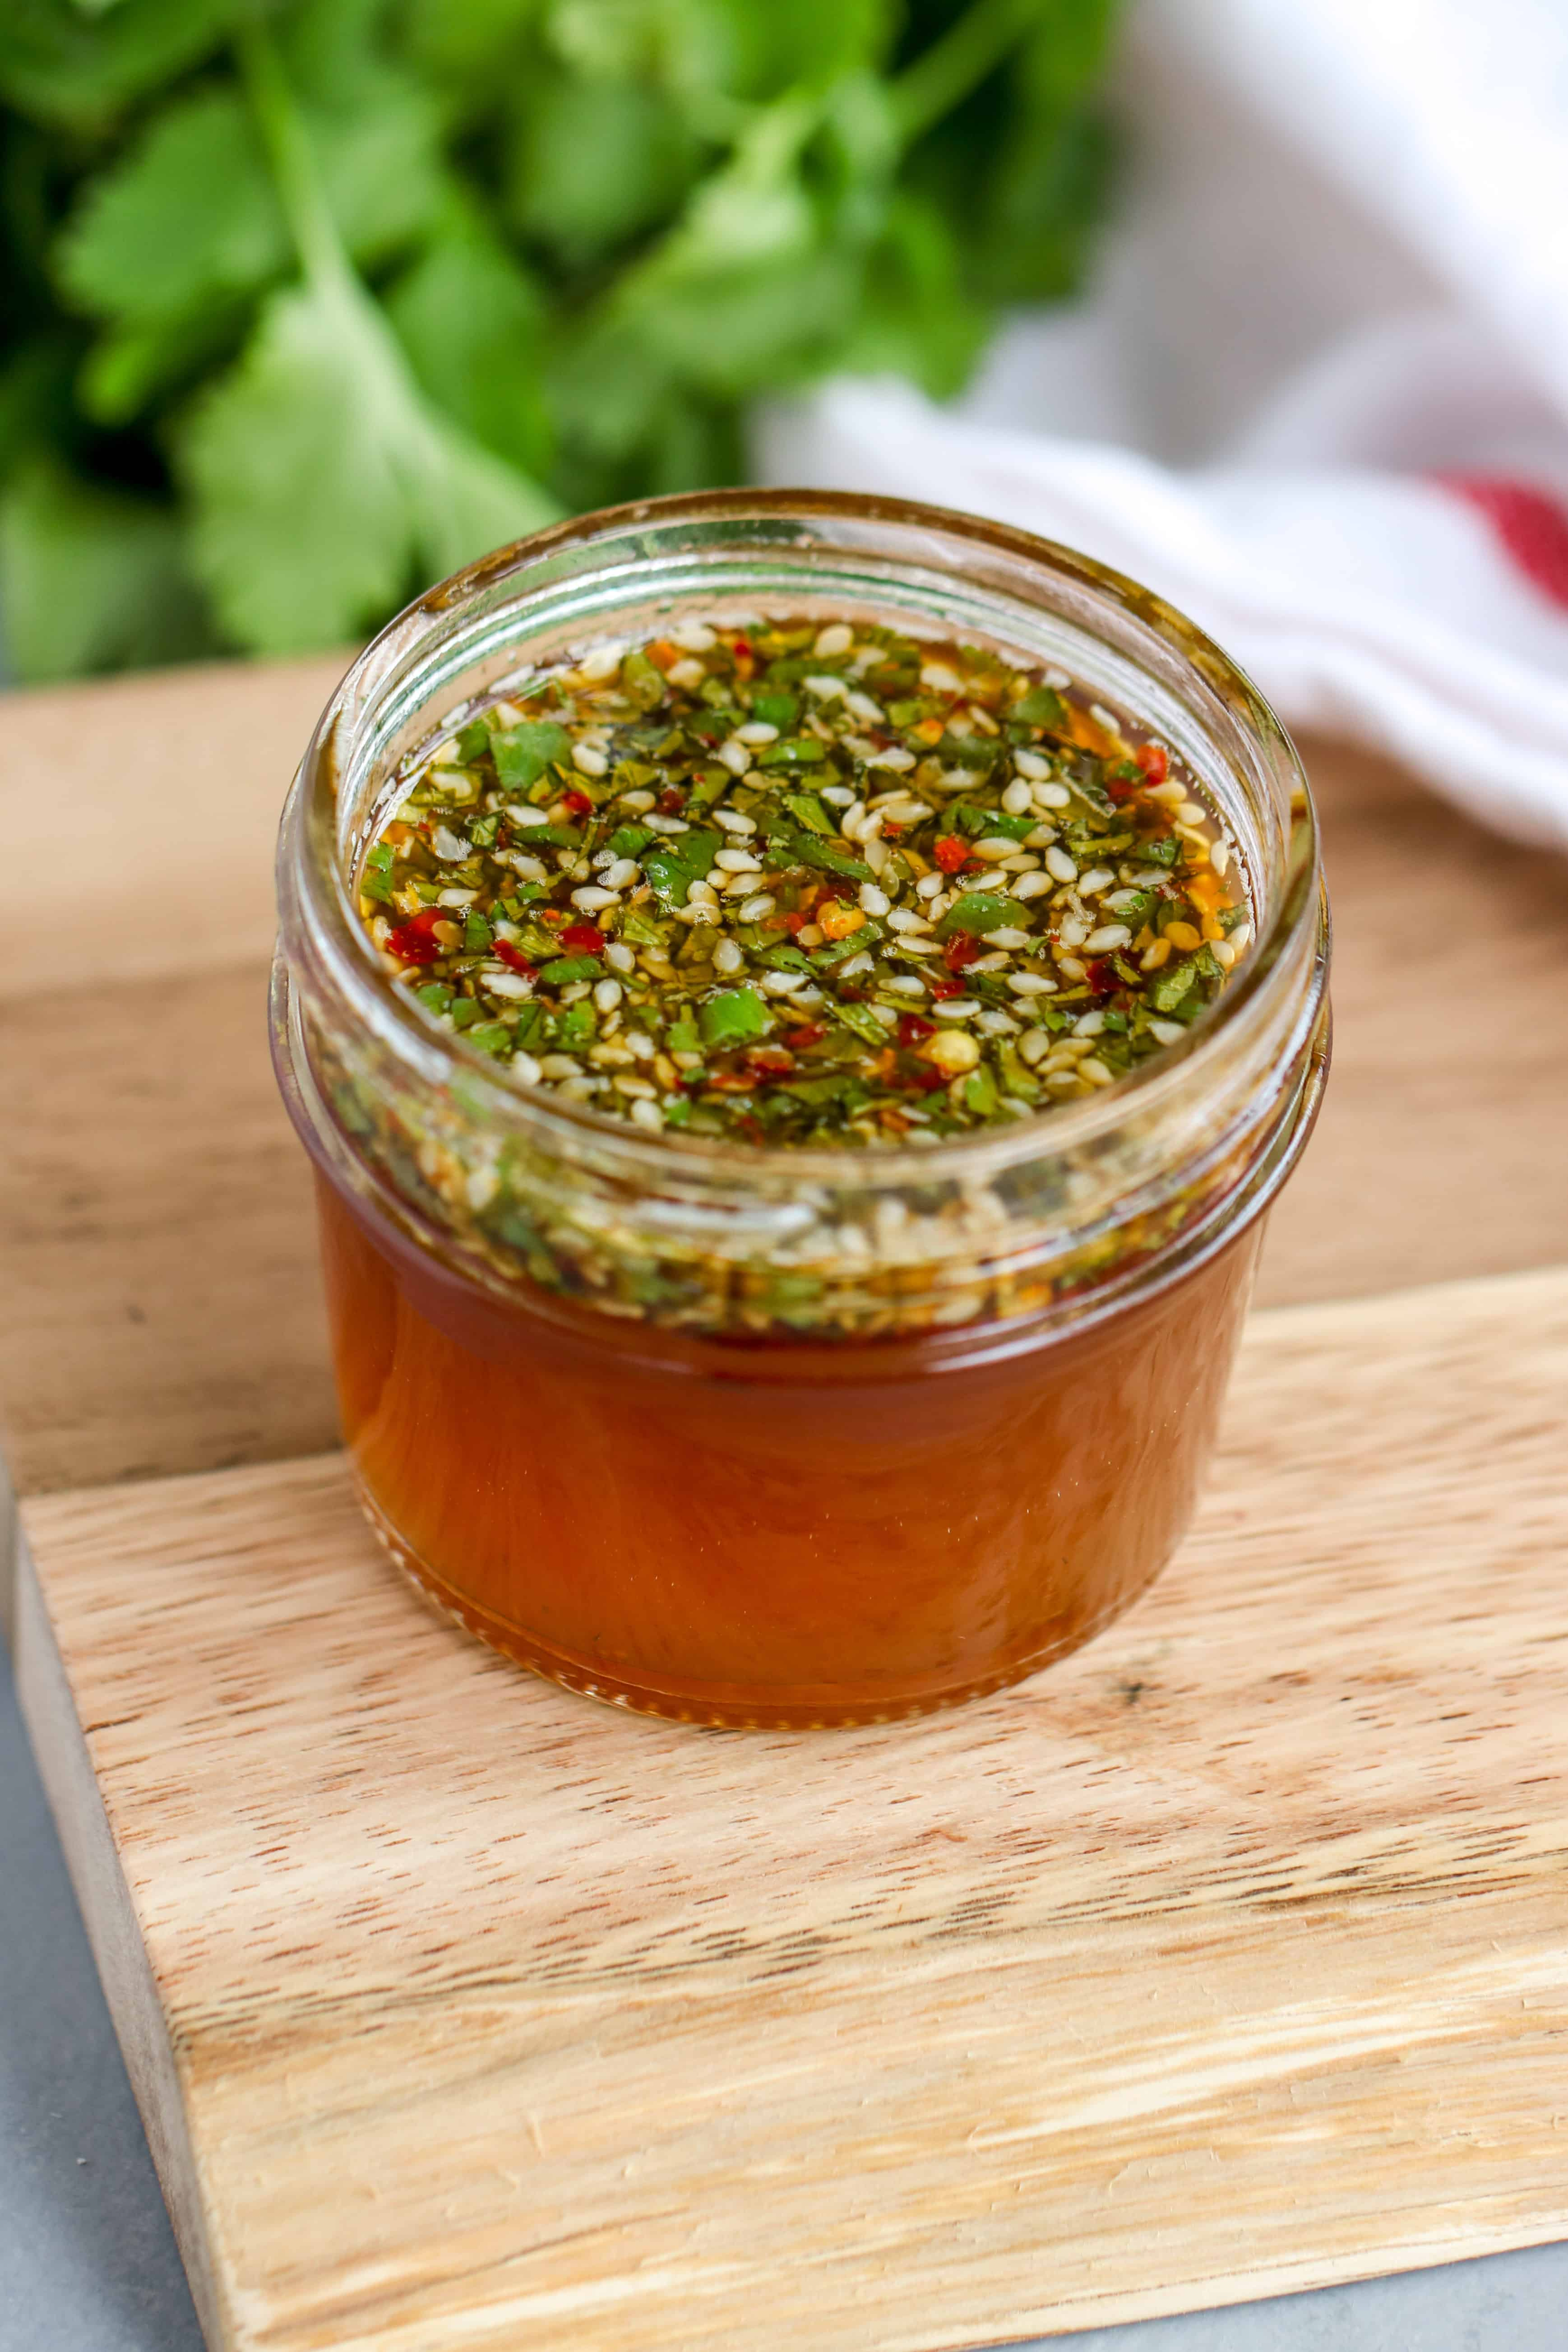 This Easy Sesame Dressing is easy to throw together and is a great for all sorts of dishes.